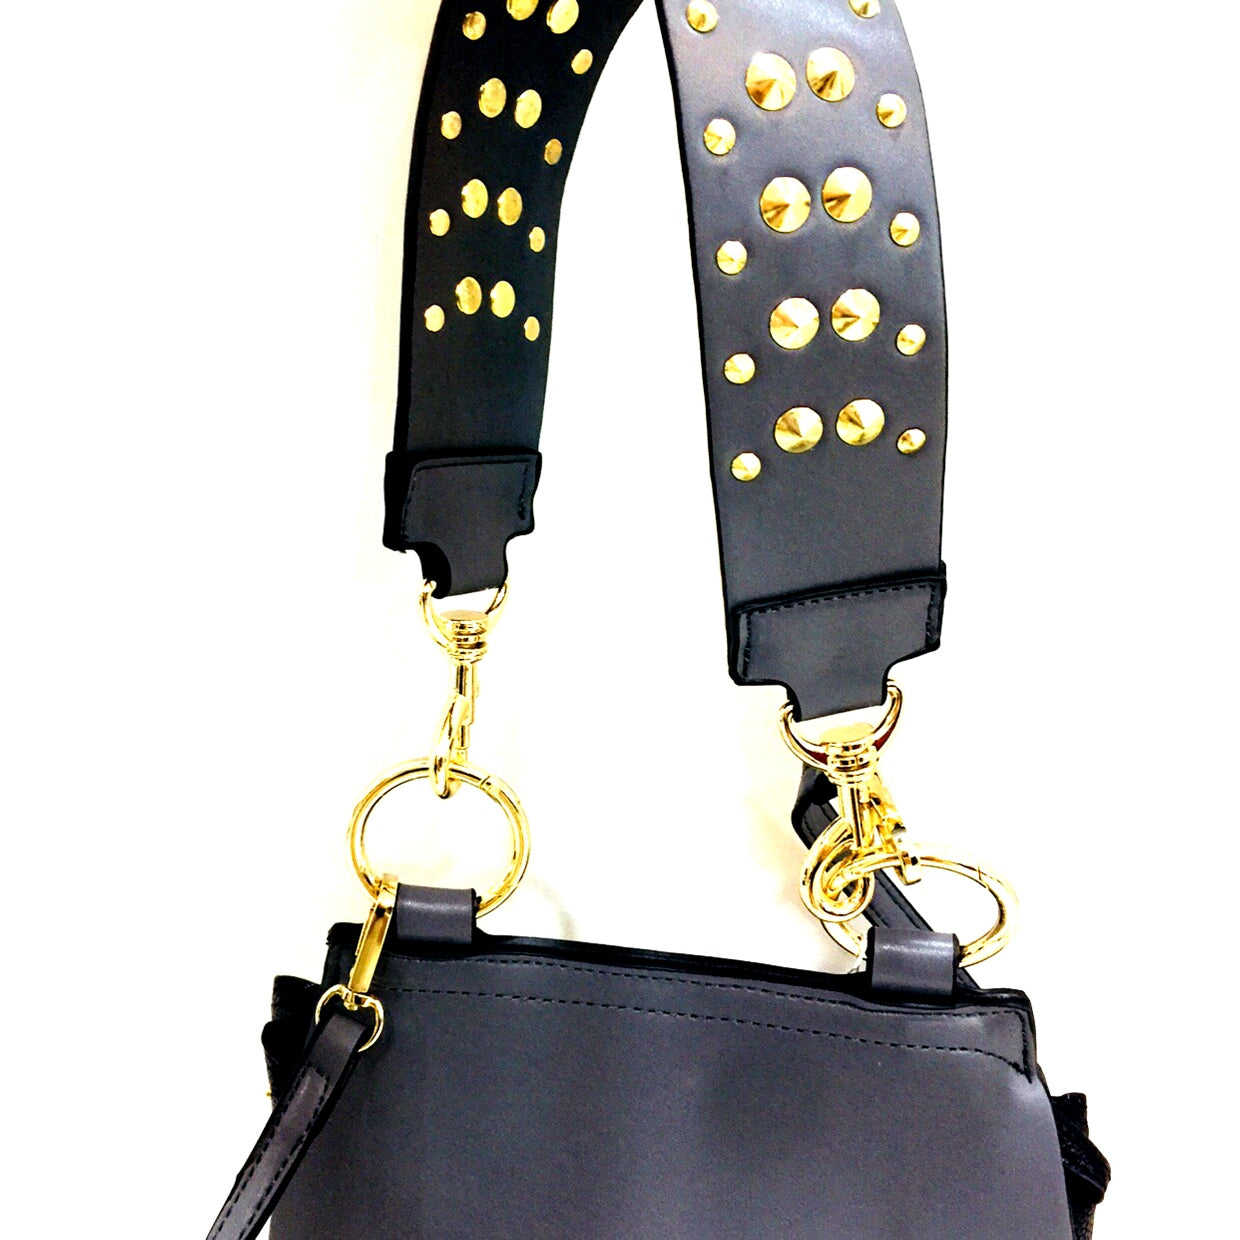 Club Studded Handbag - Inspired by Gucci